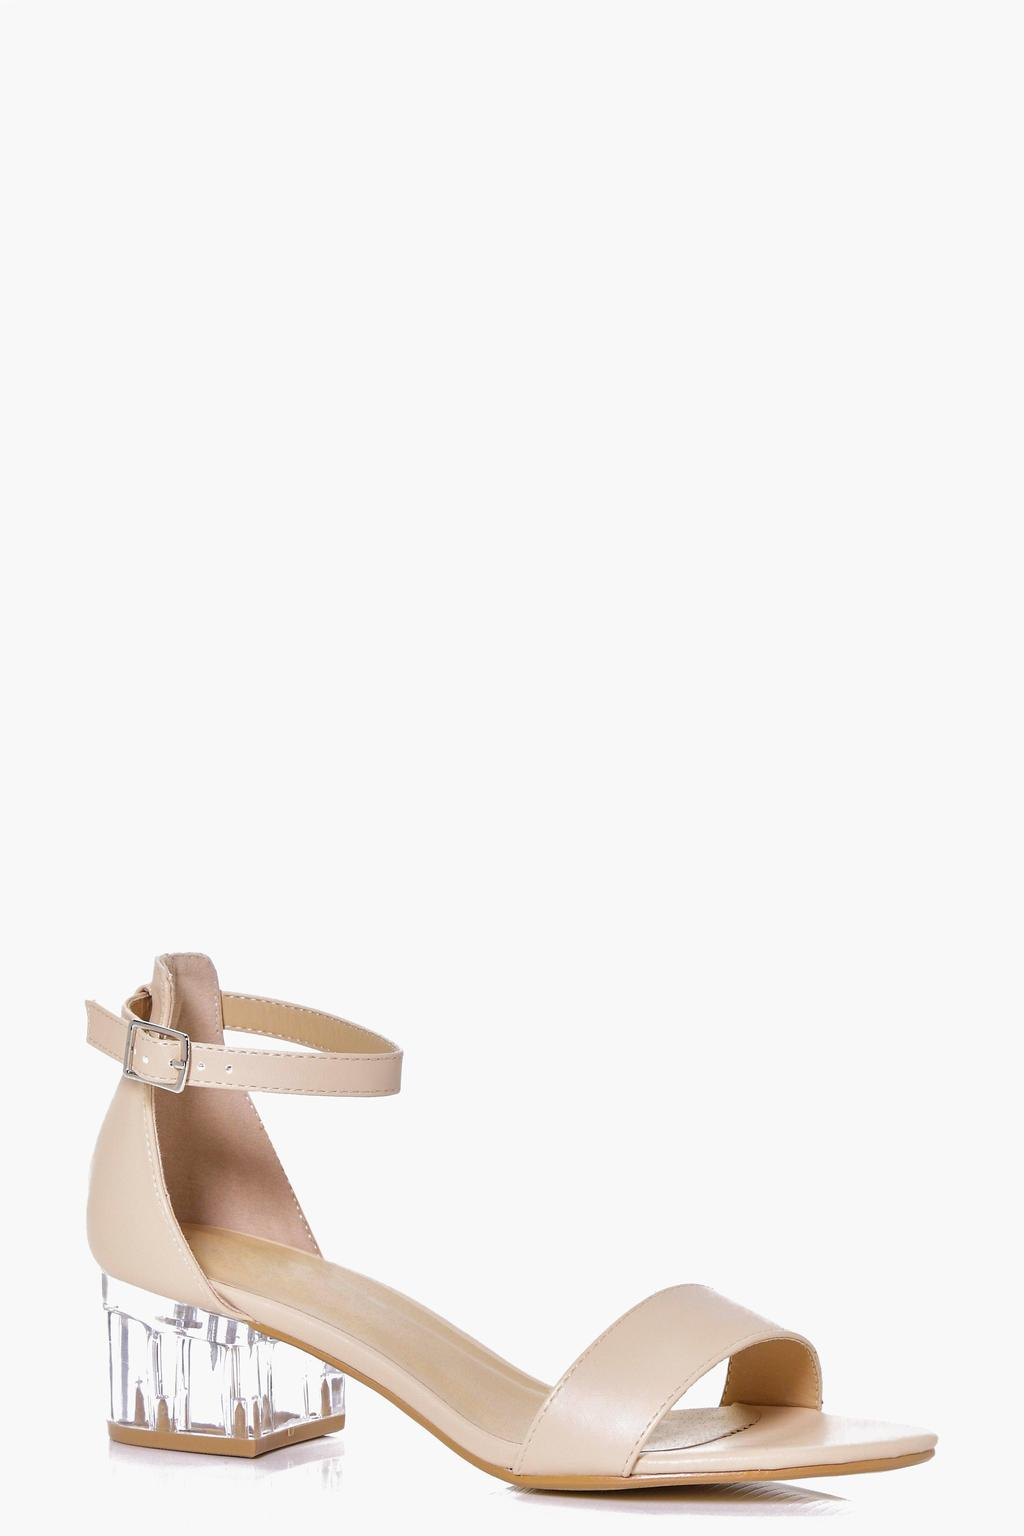 Clear Low Block Heel Sandal Nude - predominant colour: nude; occasions: casual, holiday, creative work; material: faux leather; heel height: mid; ankle detail: ankle strap; heel: block; toe: open toe/peeptoe; style: standard; finish: patent; pattern: plain; season: s/s 2016; wardrobe: investment